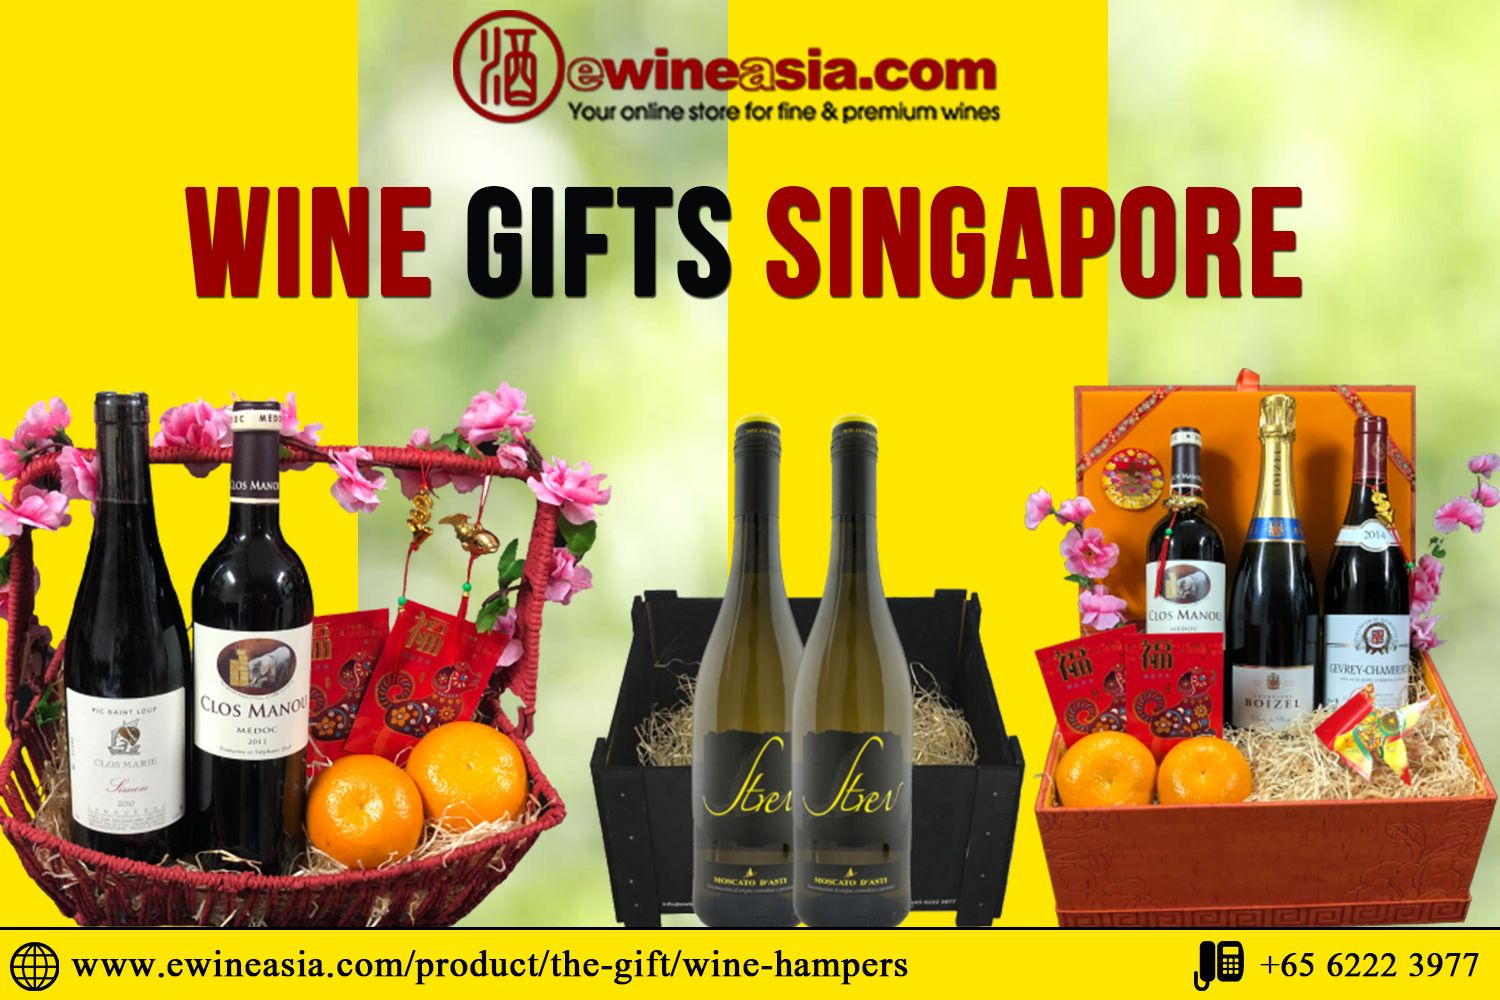 Perfects gifts for wine lovers in Singapore. An ultimate